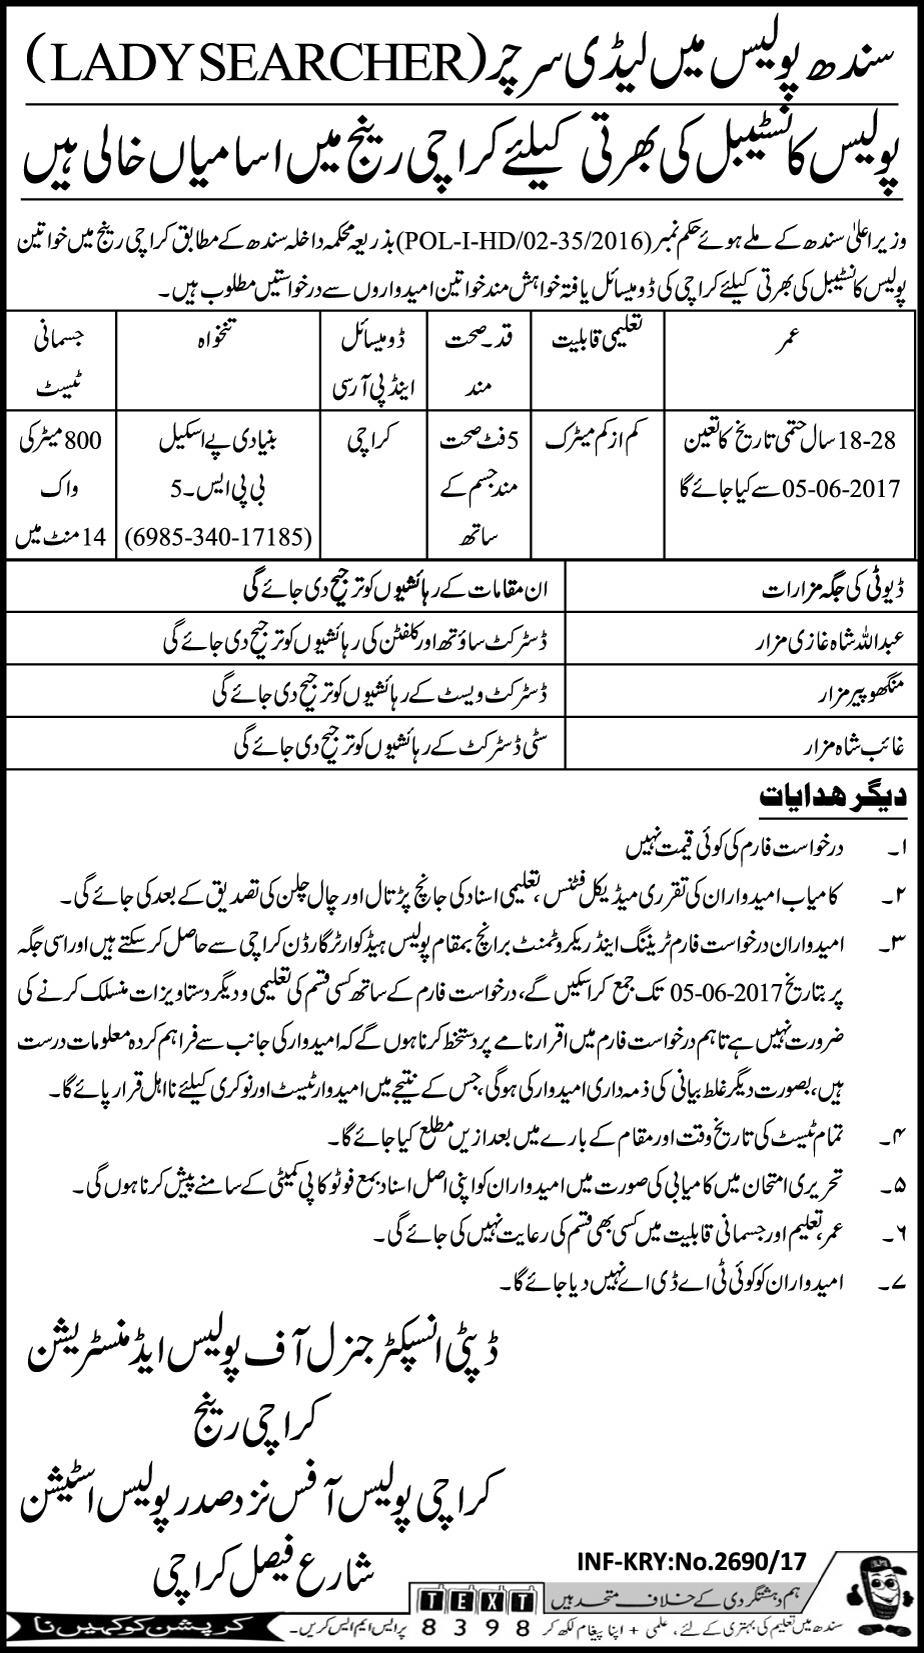 Sindh Lady Police Constable Jobs 2017 Application Form, Last Date